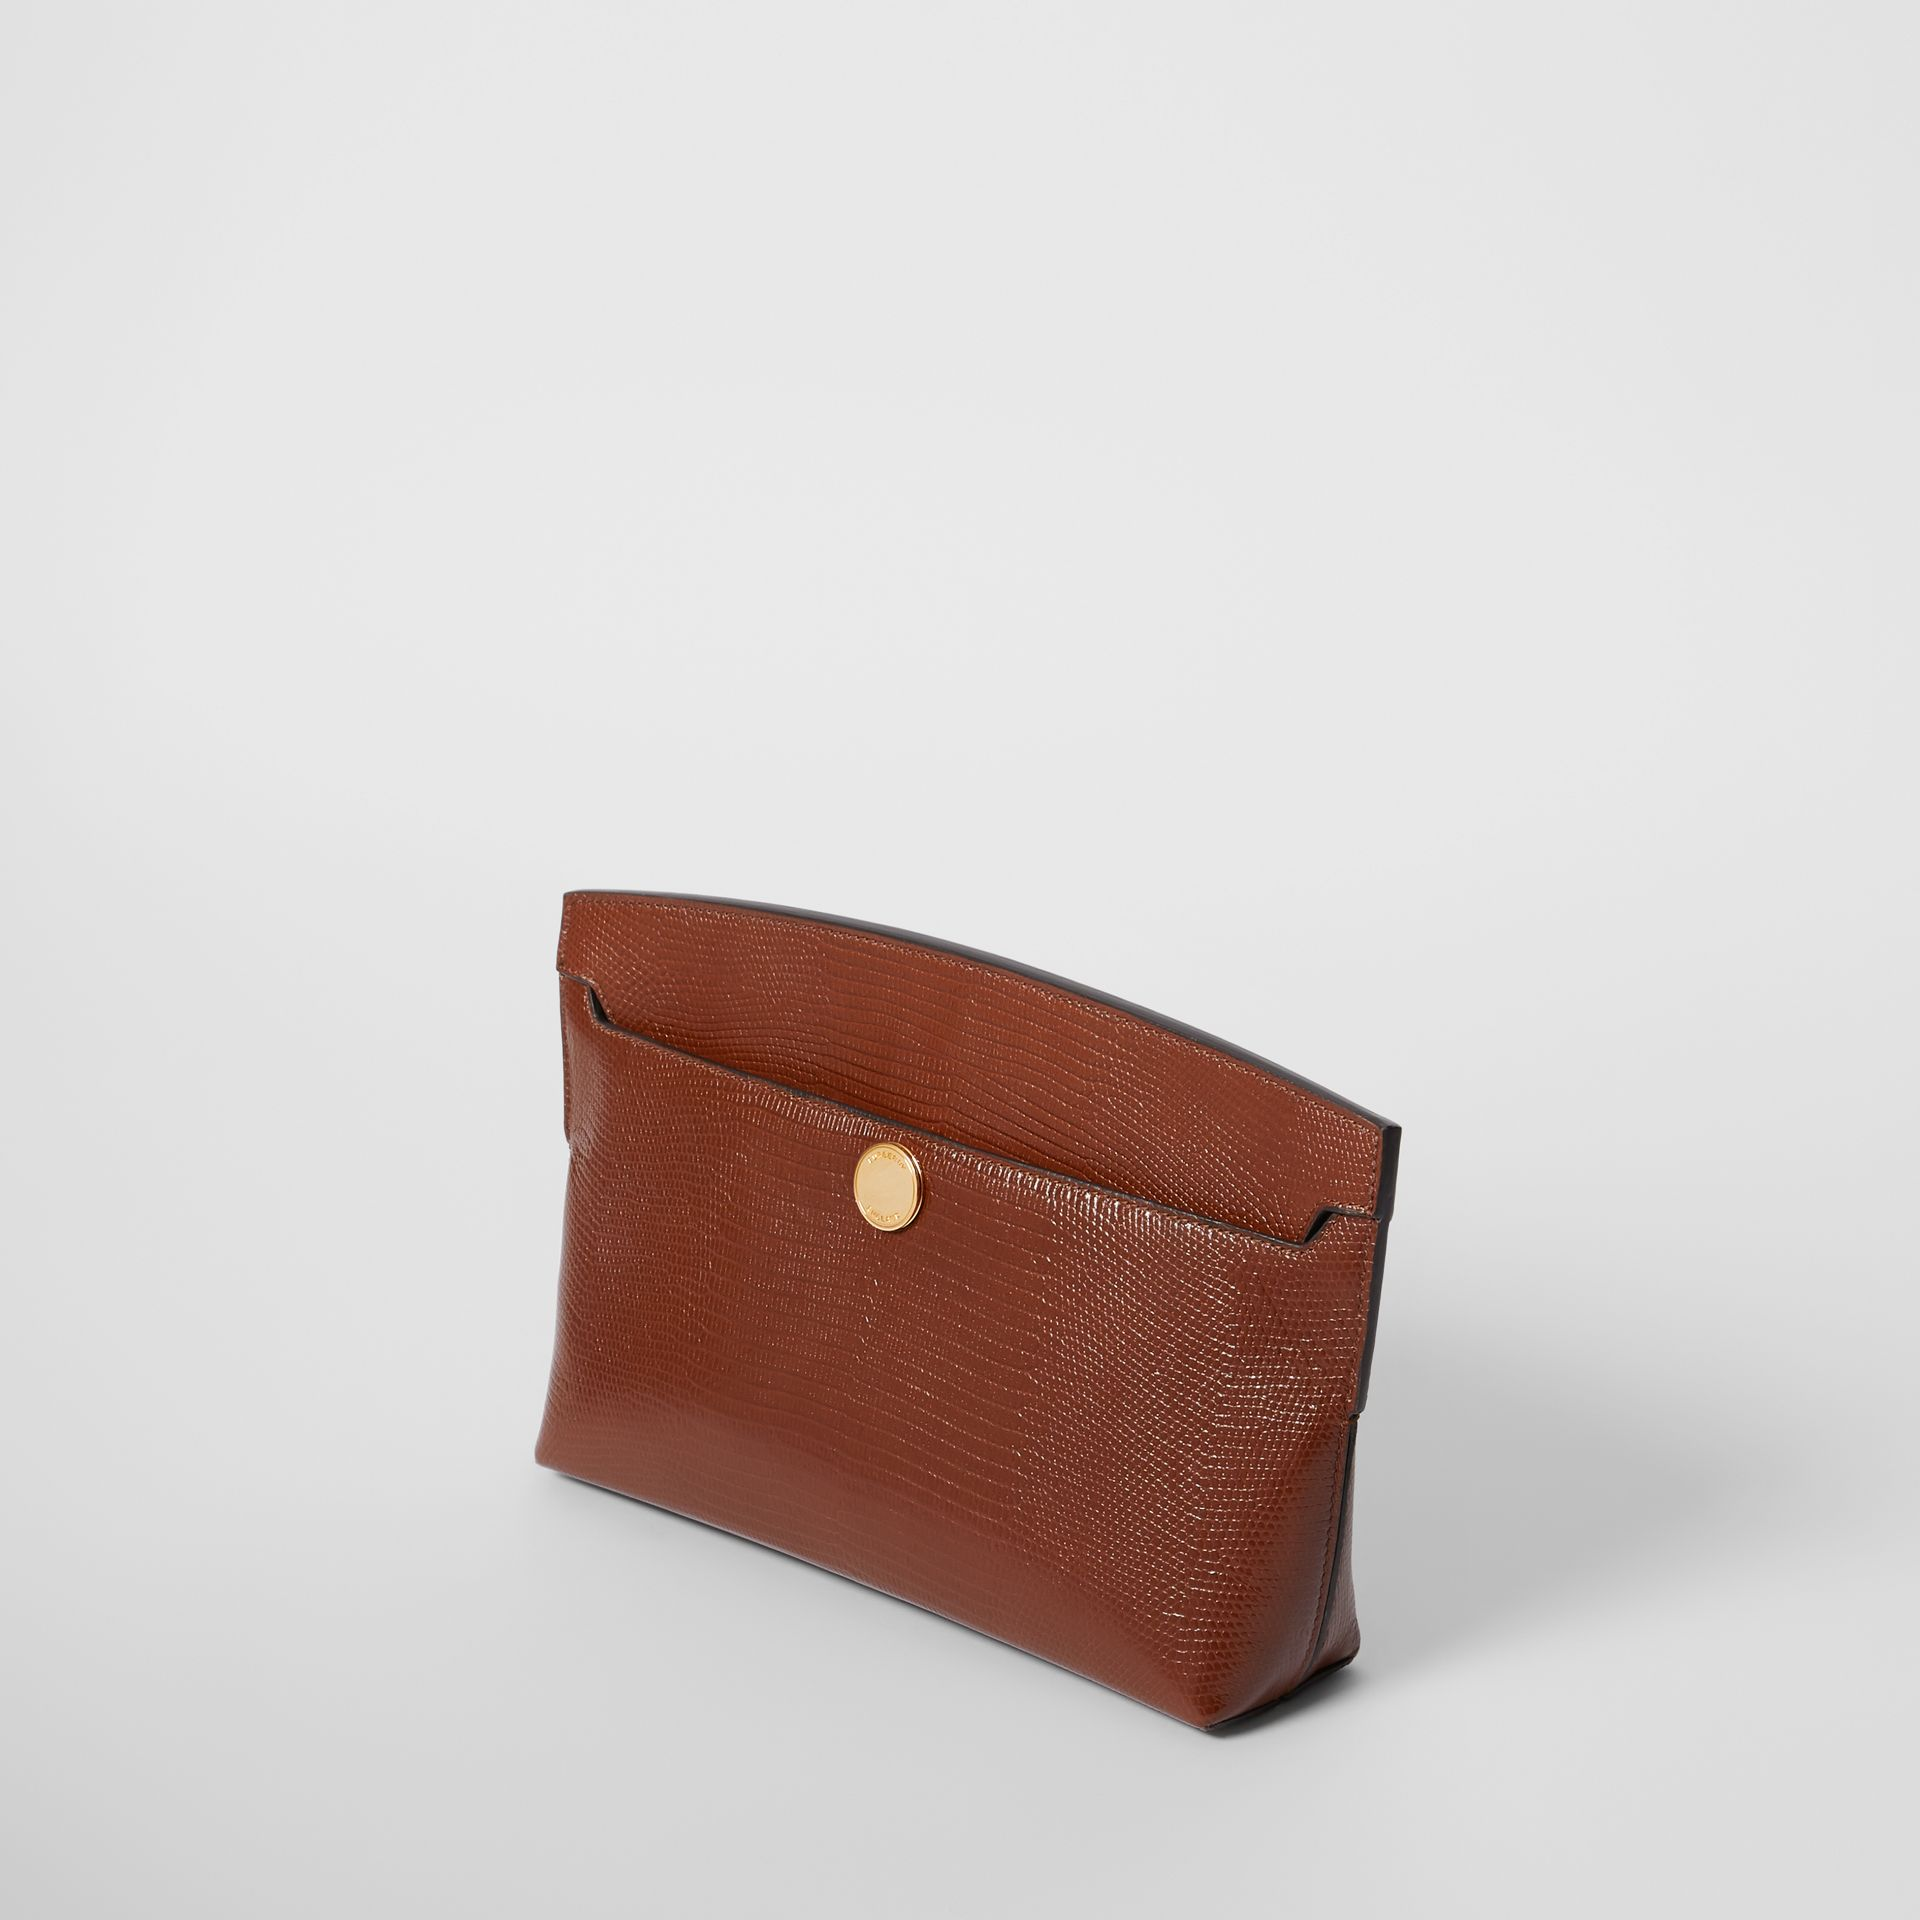 Embossed Deerskin Society Clutch in Tan - Women | Burberry - gallery image 2